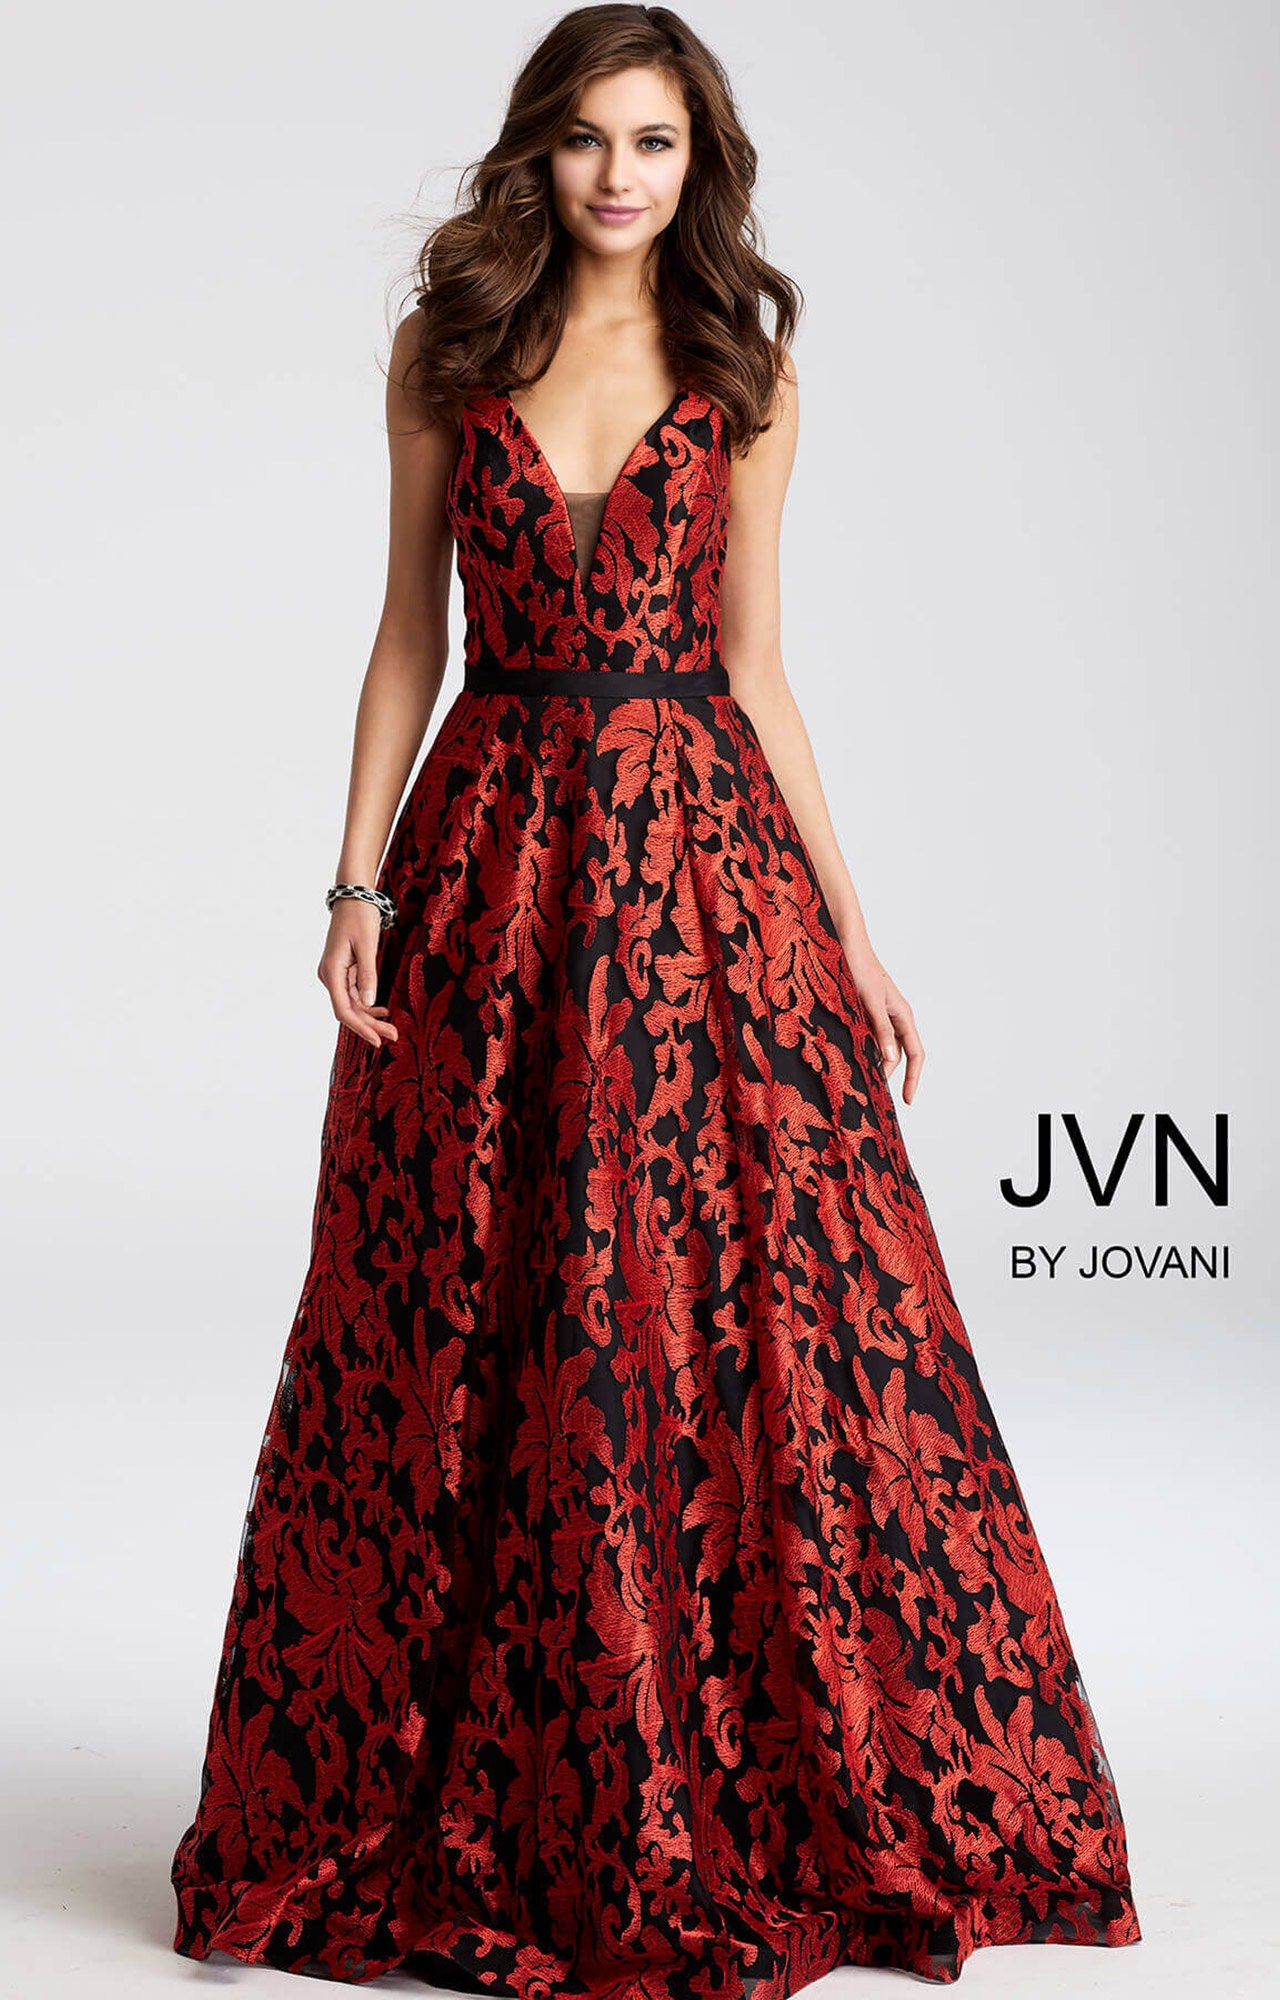 Jovani jvn55932 - V-Neckline Printed Ball Gown Dress Prom Dress